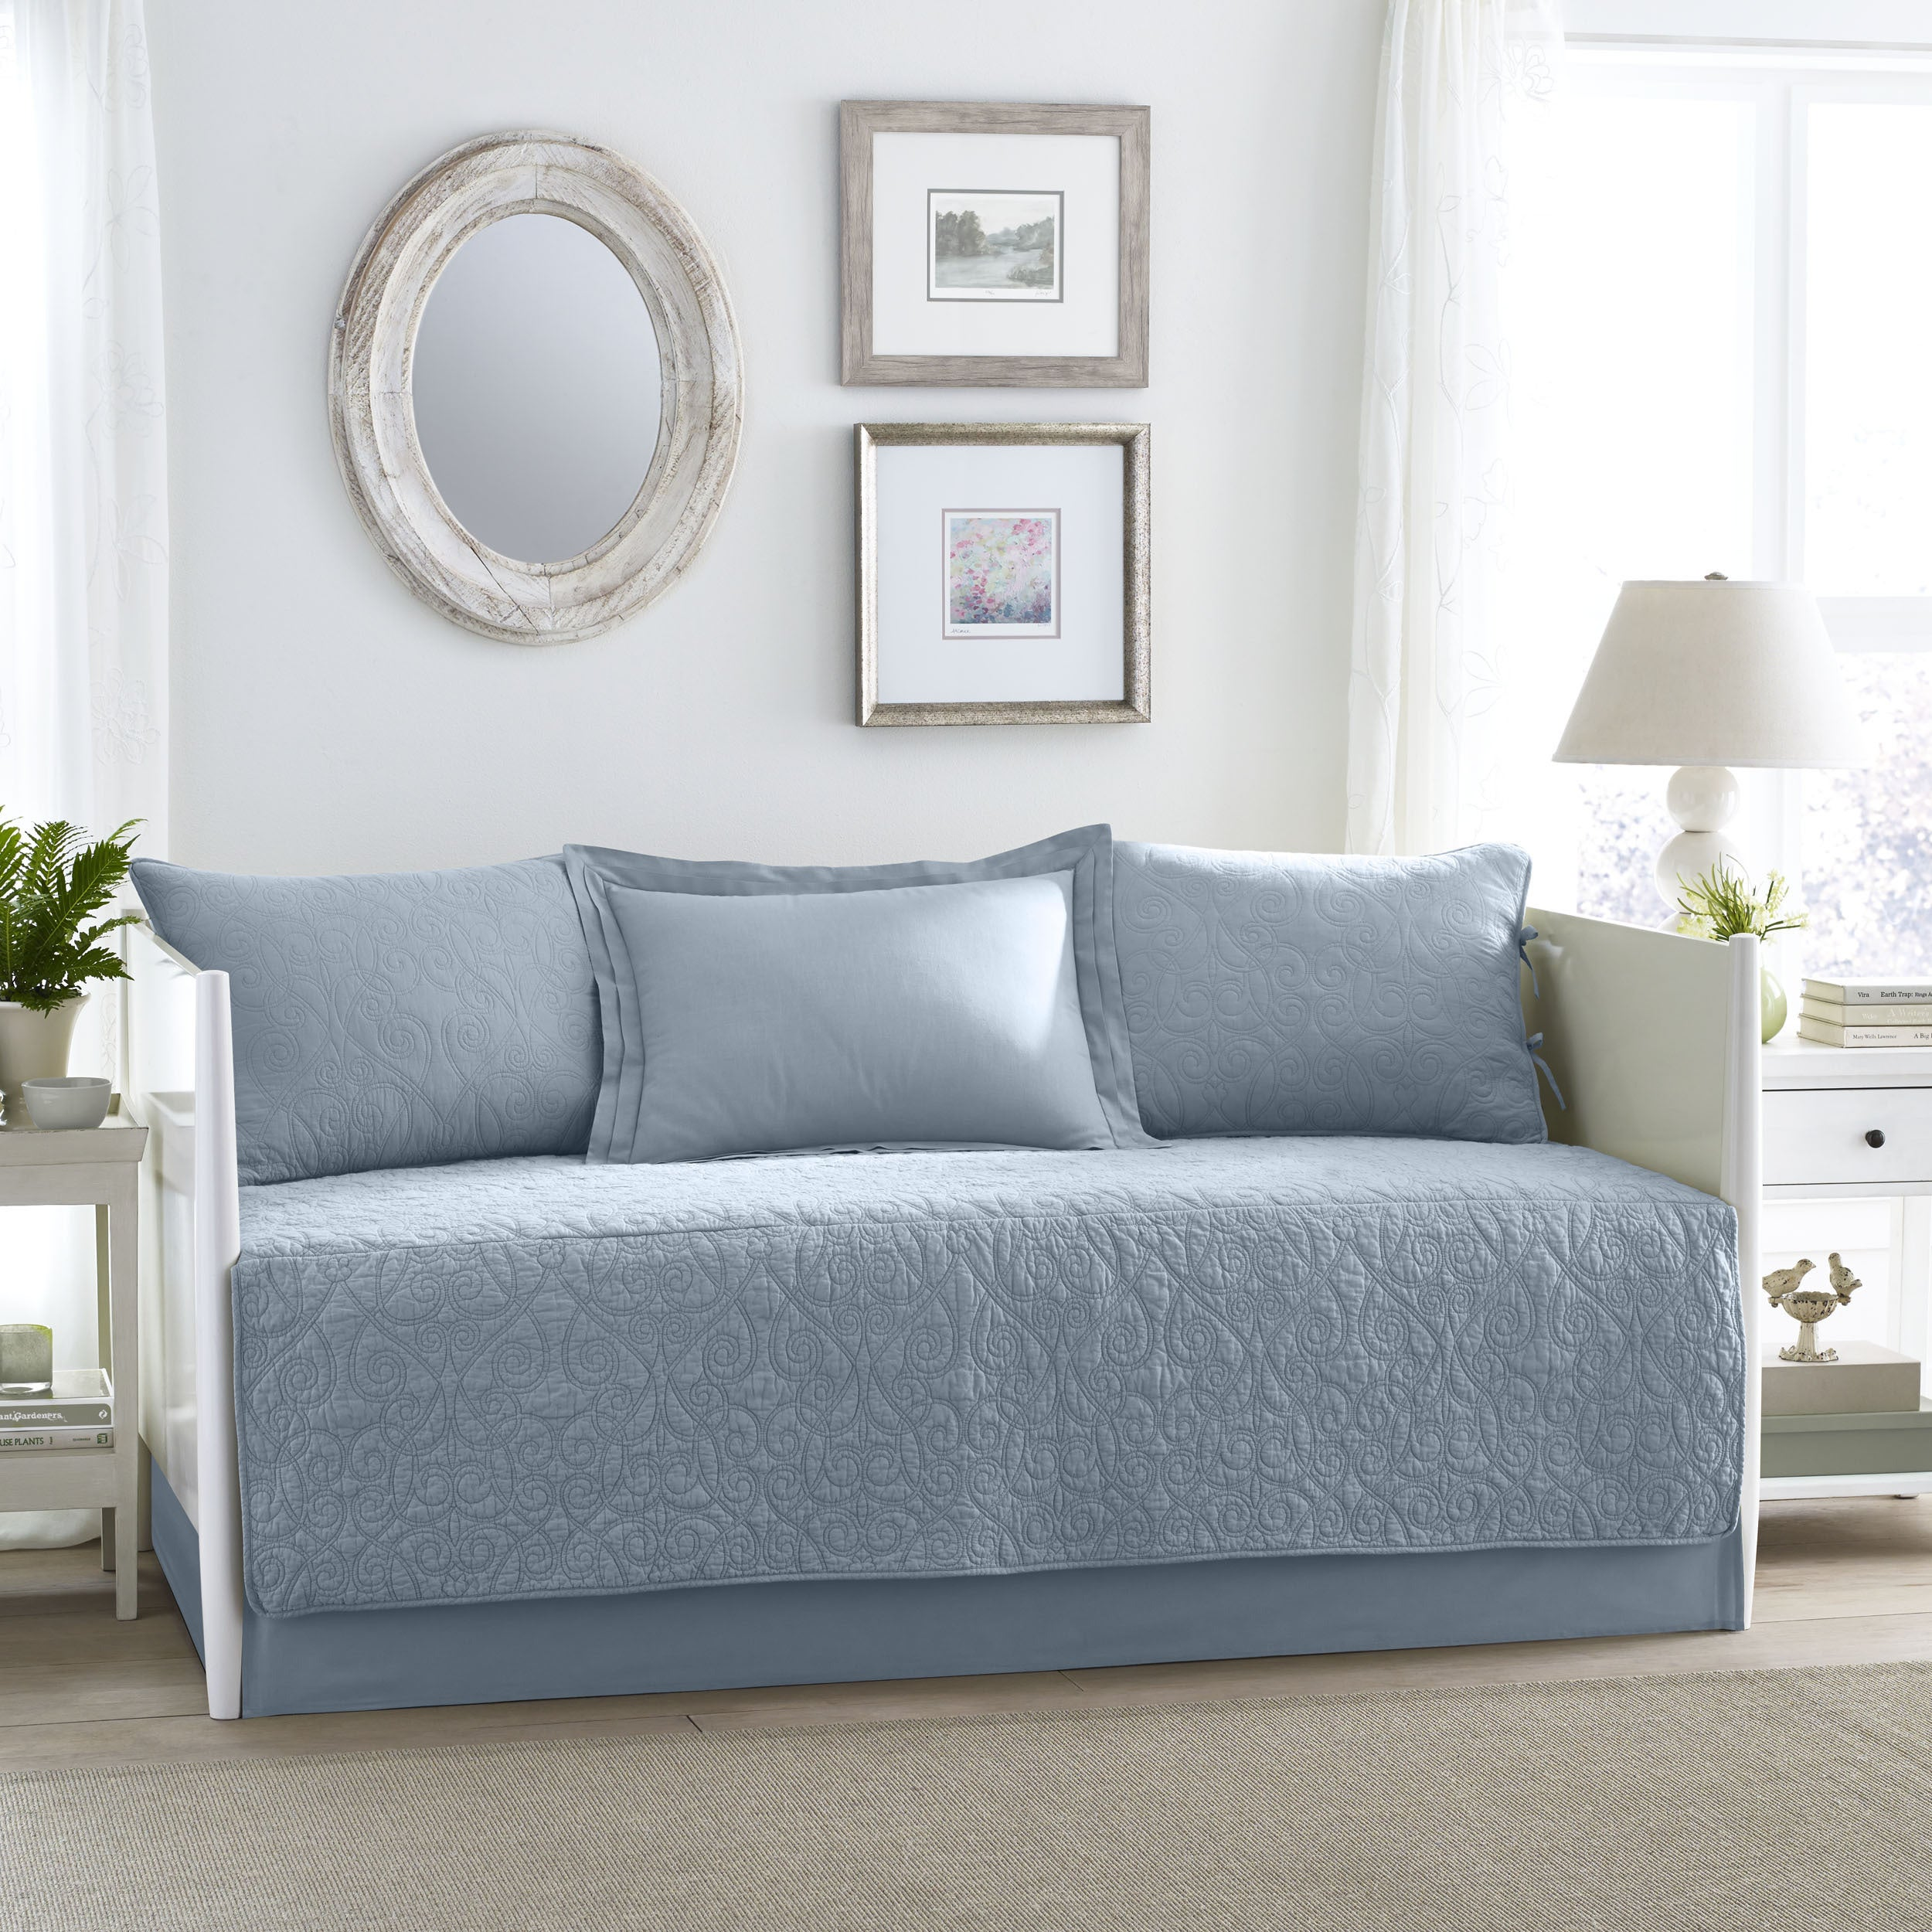 Laura Ashley Felicity Breeze Blue 5 Piece Daybed Set Overstock 10410655